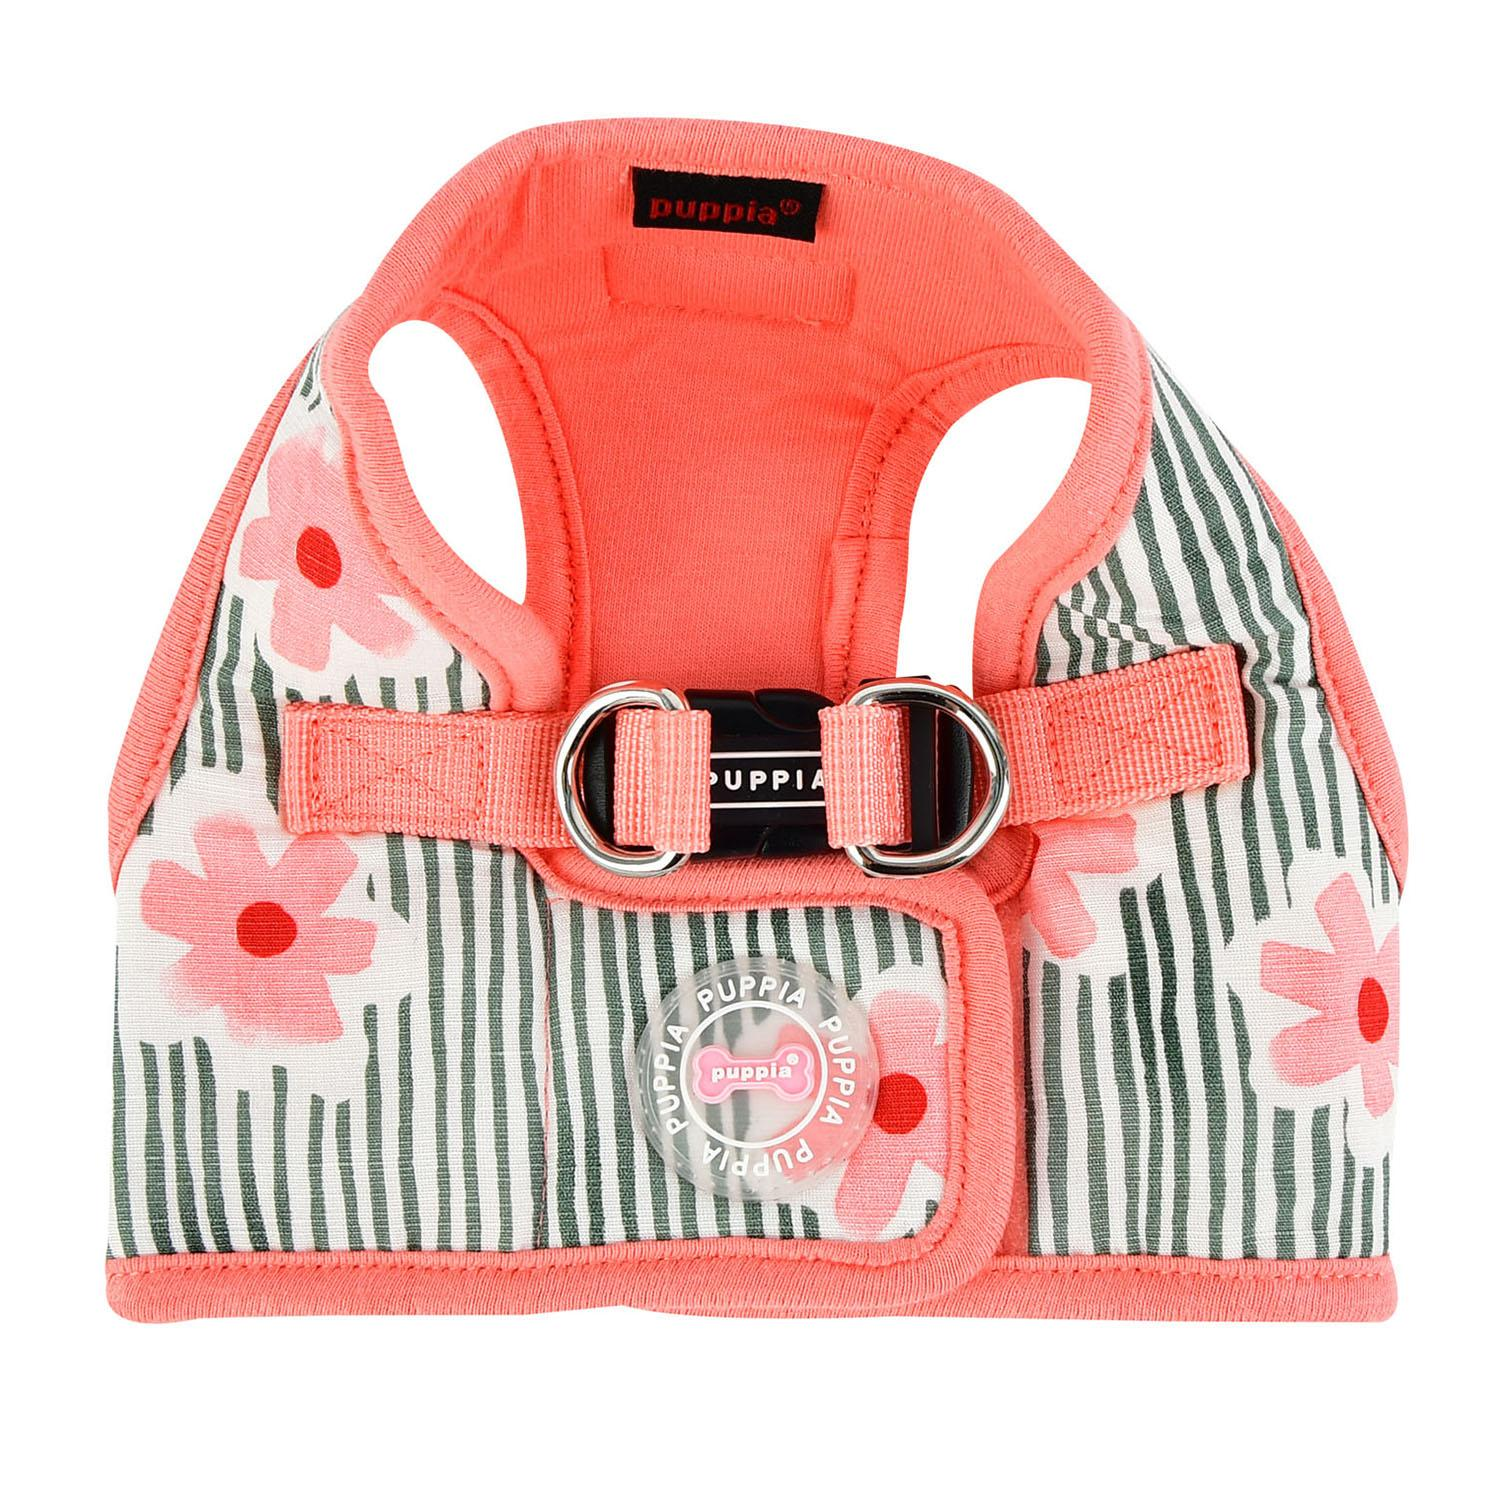 Verna Vest Dog Harness by Puppia - Pink